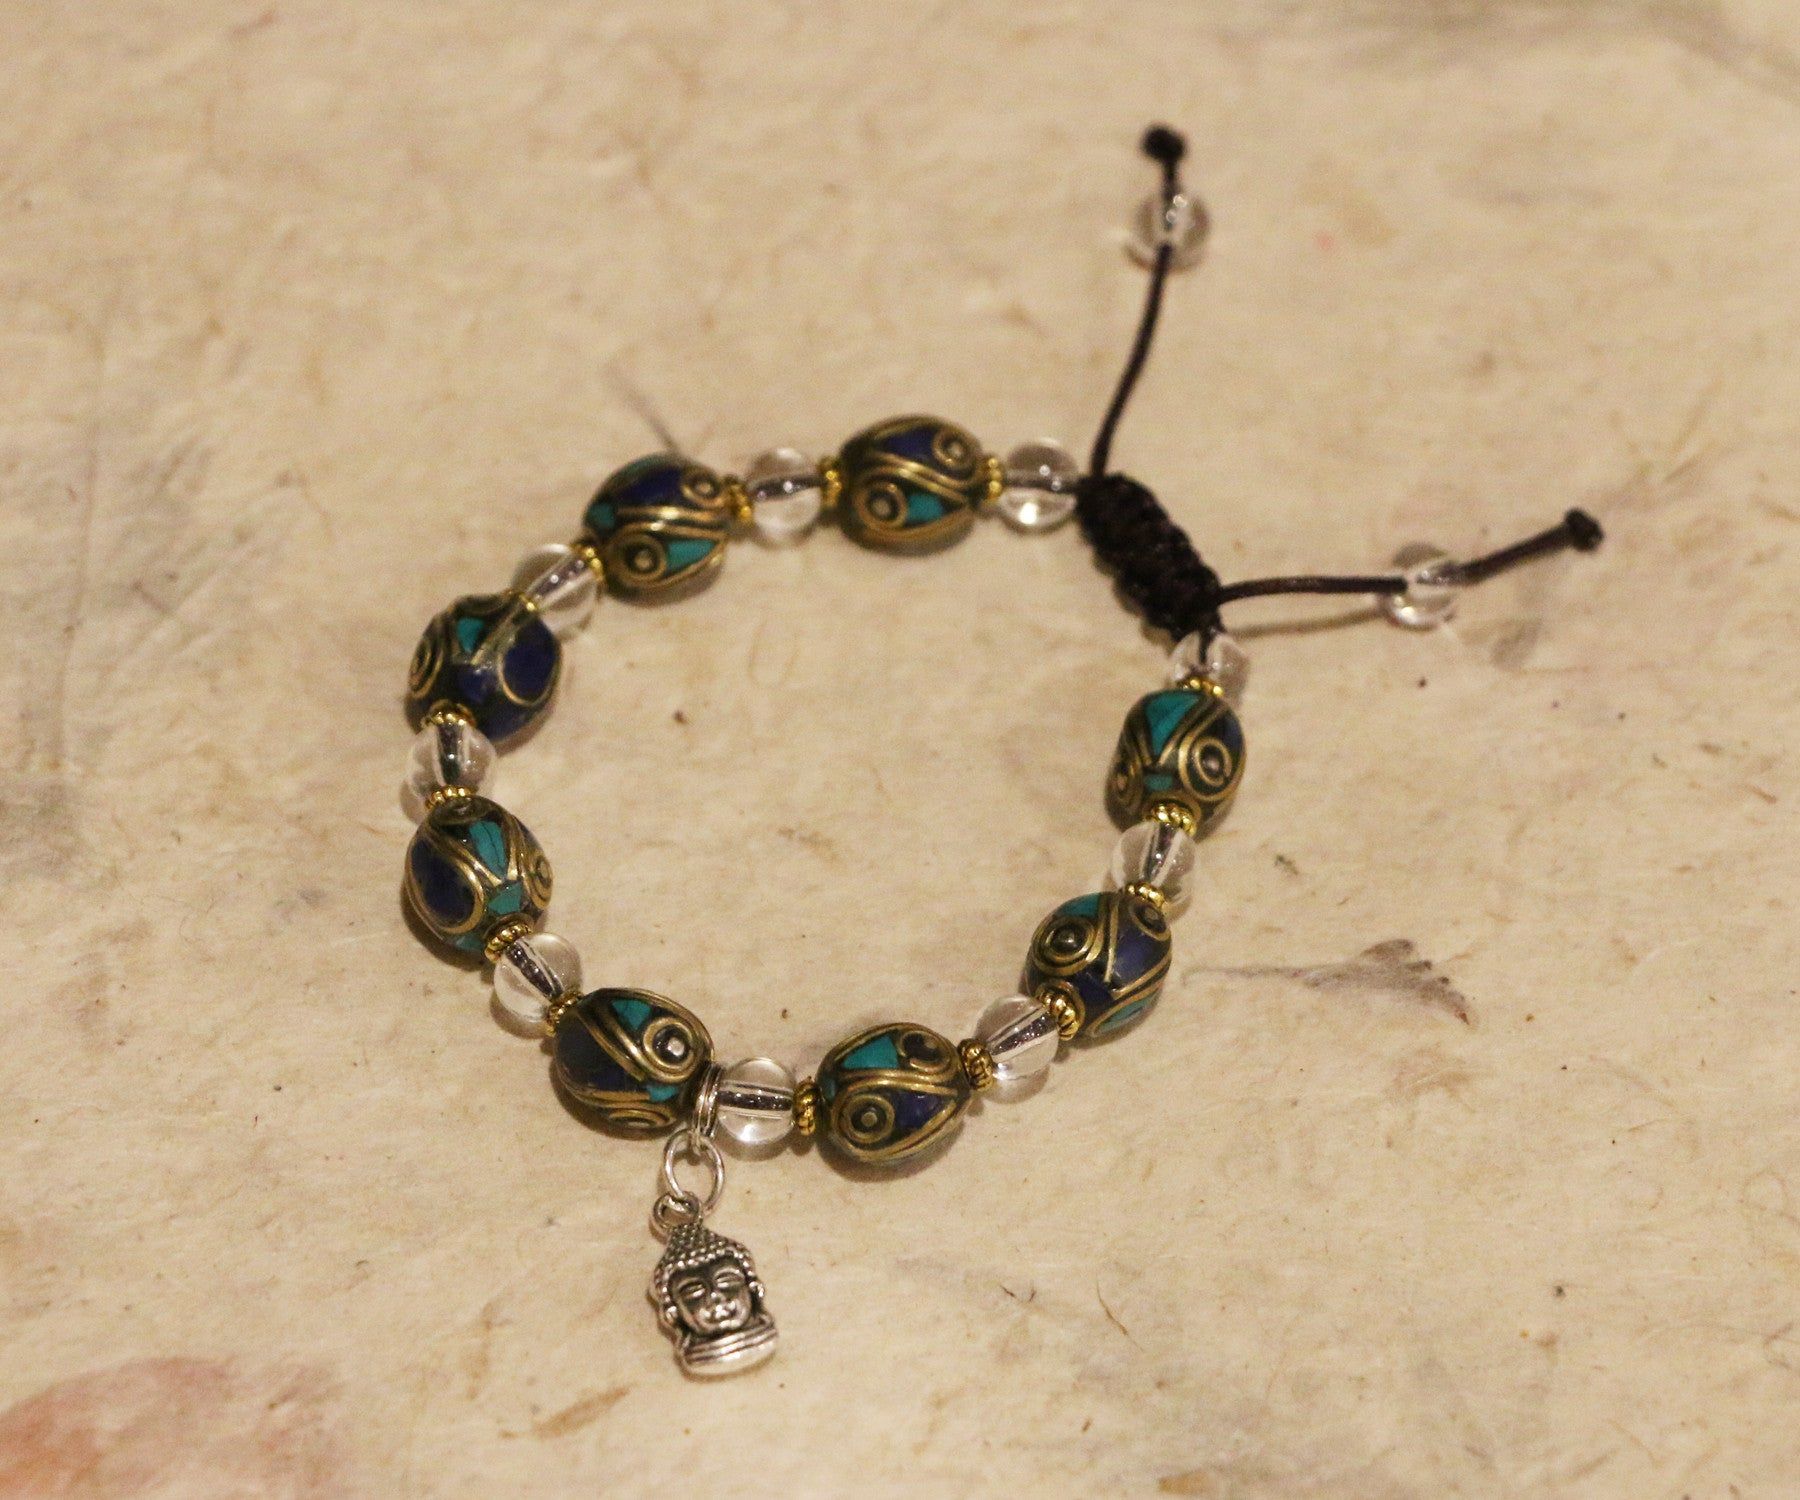 Lapis Turquoise with Buddha charm - Tibet Arts & Healing